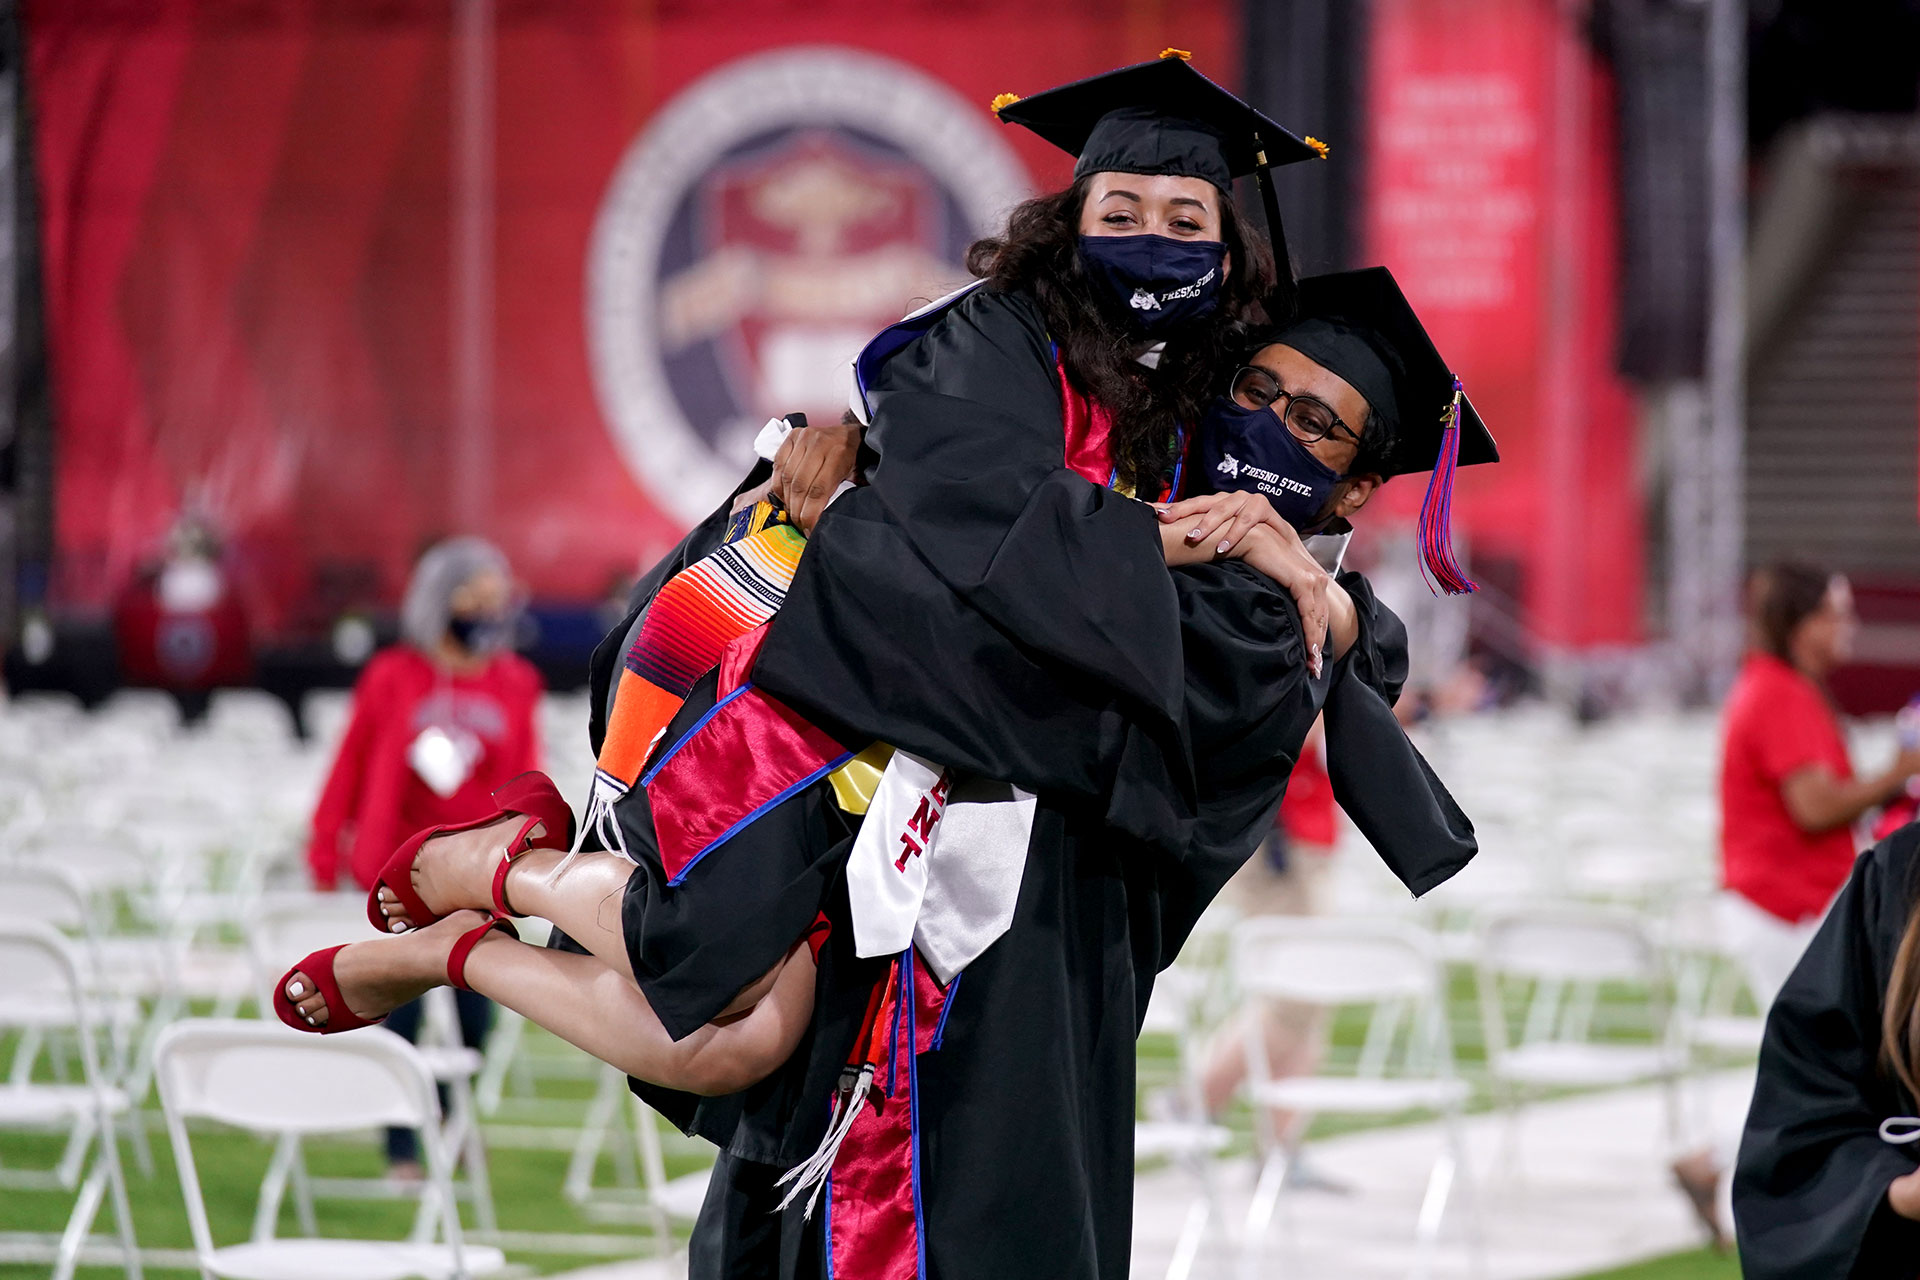 Two graduates hug each other.